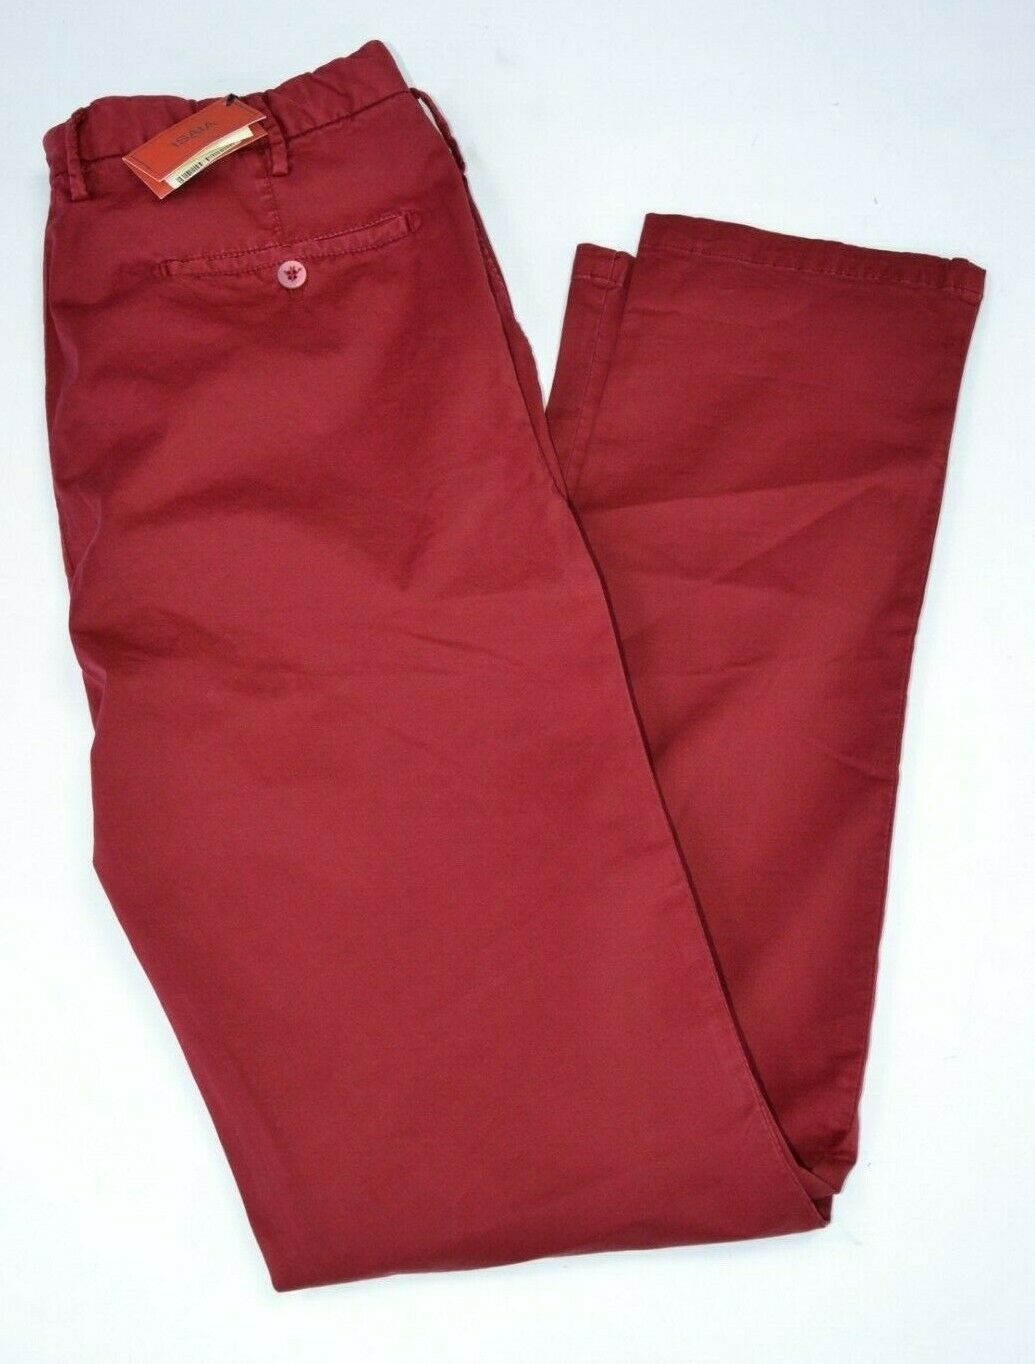 NWT Isaia Napoli IMPERFECT flat front red pants cotton sz 52